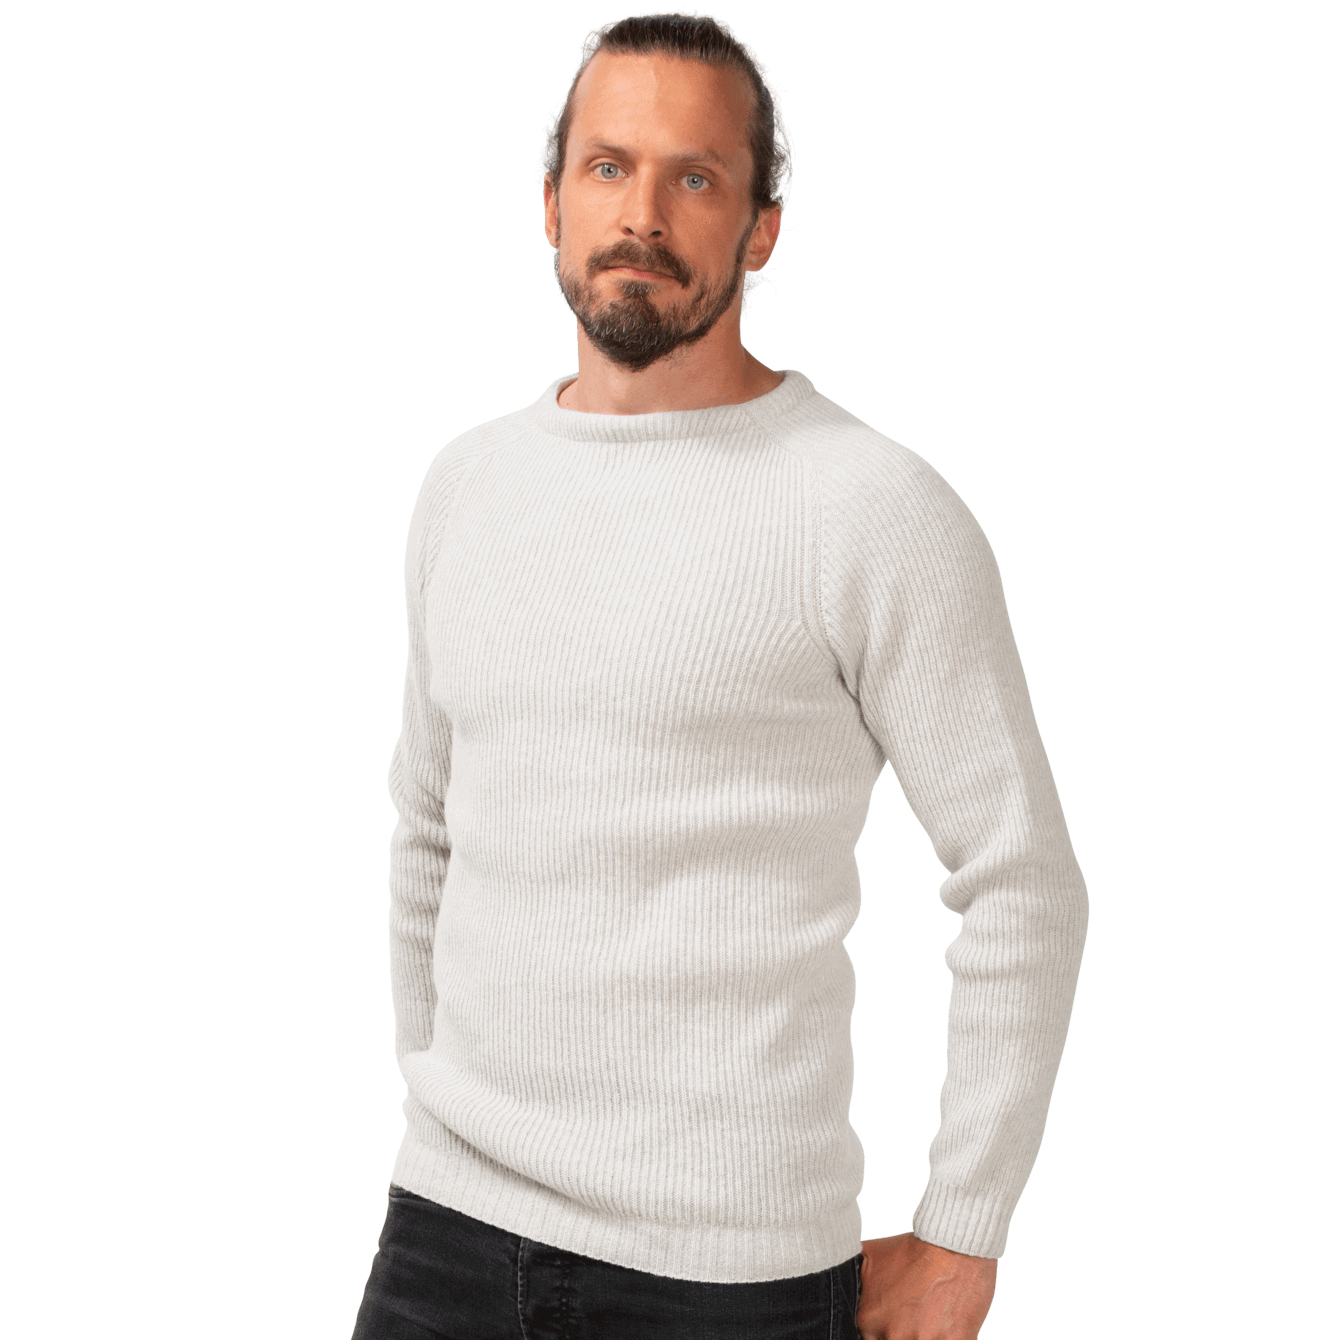 North Outdoor - M's Kiiruna sweater - 100 % Merino Wool - Made in Finland - Weekendbee - sustainable sportswear